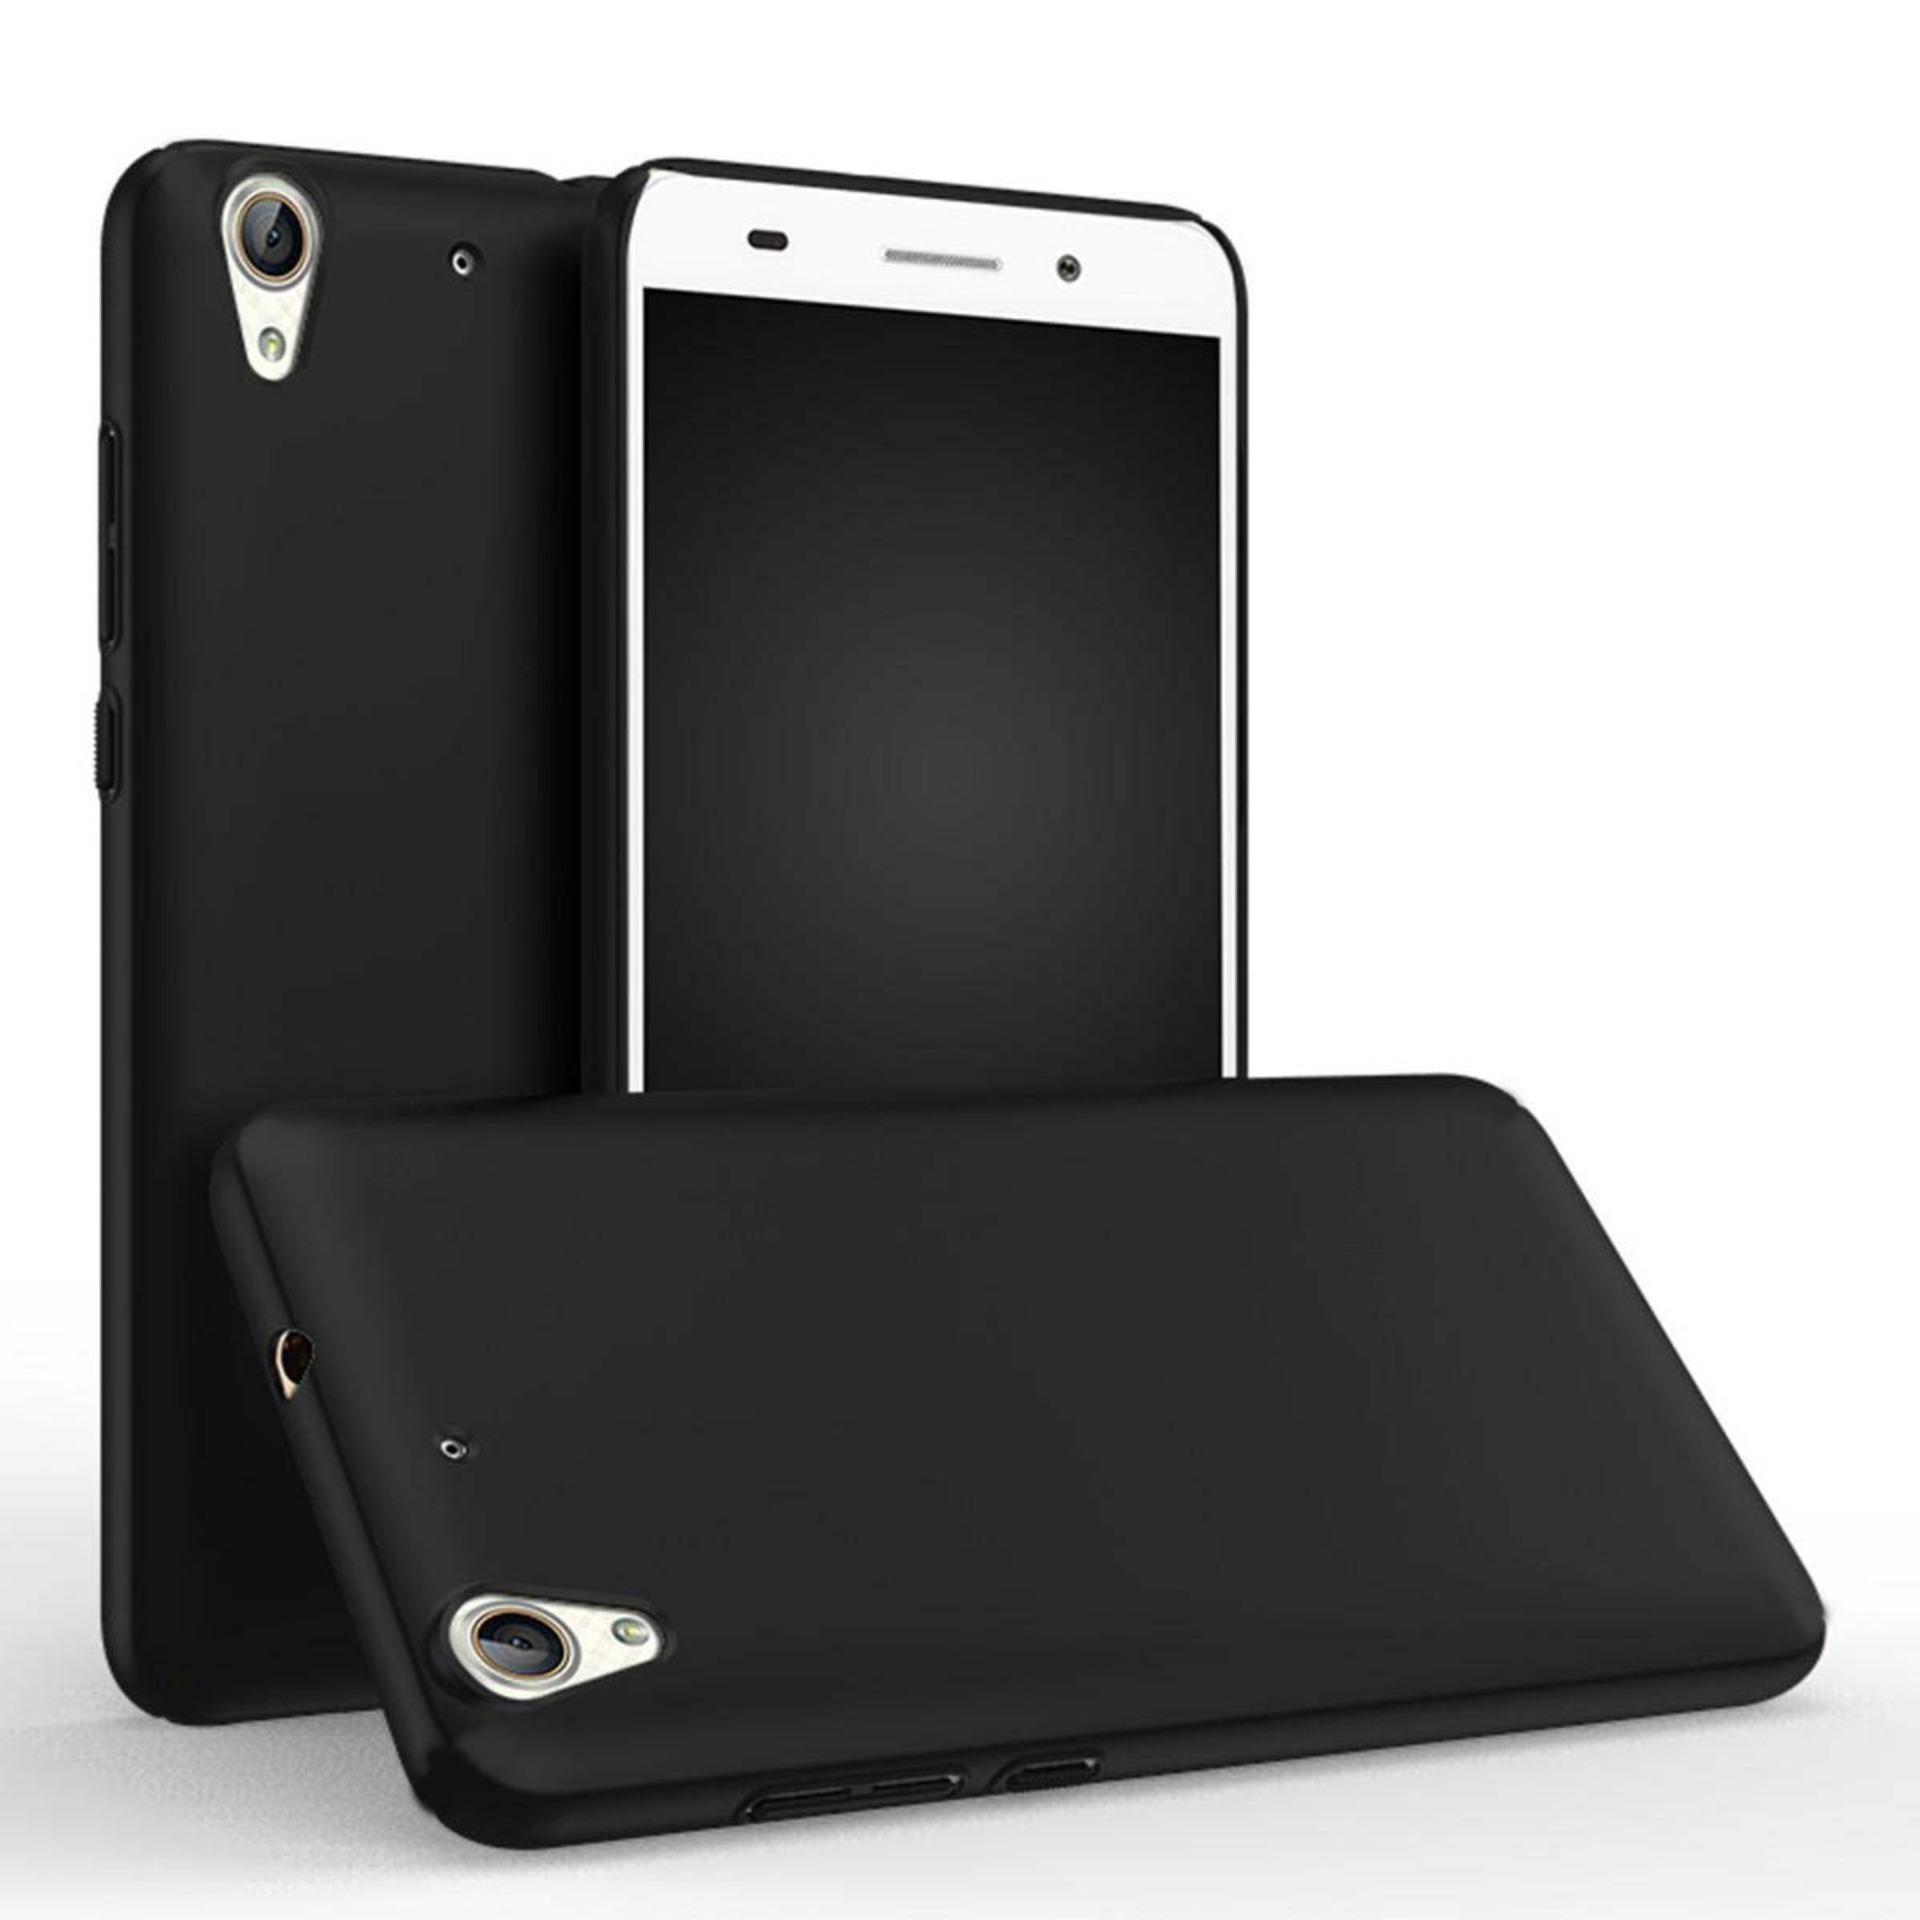 DarkNight for Huawei Ascend Y6ii / Y6 2 / Y6 (2016) | Slim Case Black Matte Softcase Premium (Anti